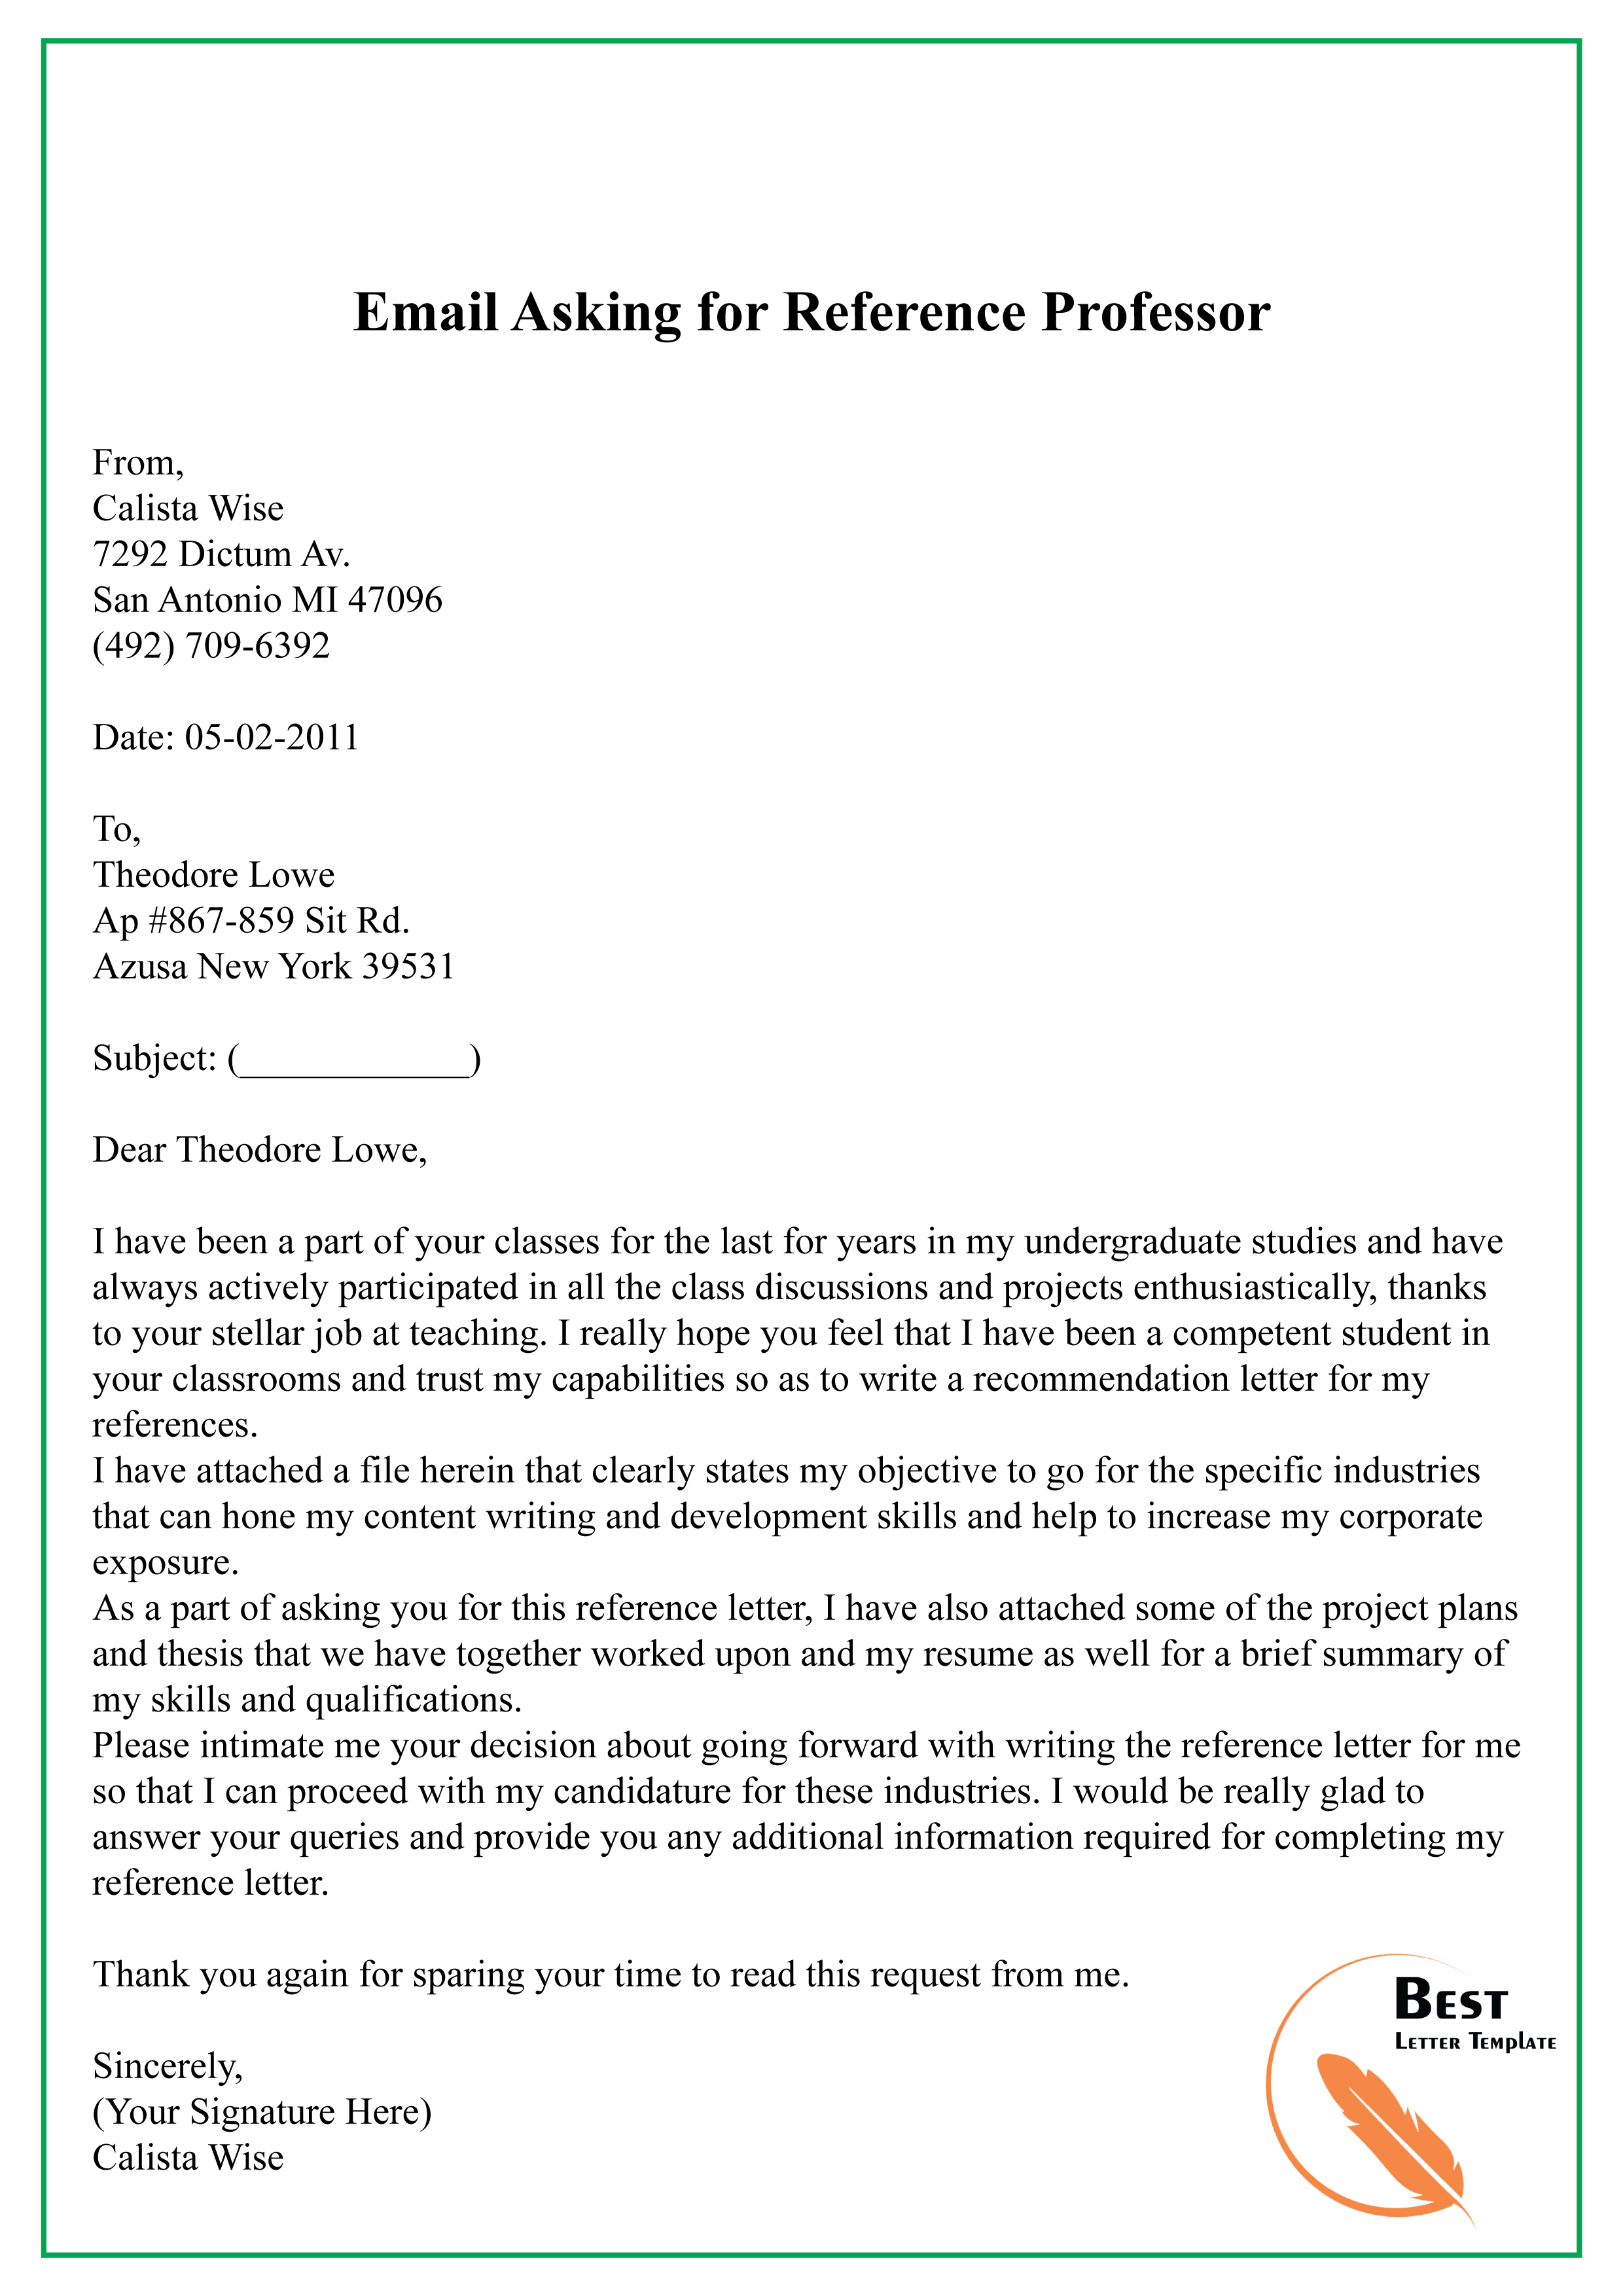 Ask Professor For Recommendation Letter Email from bestlettertemplate.com